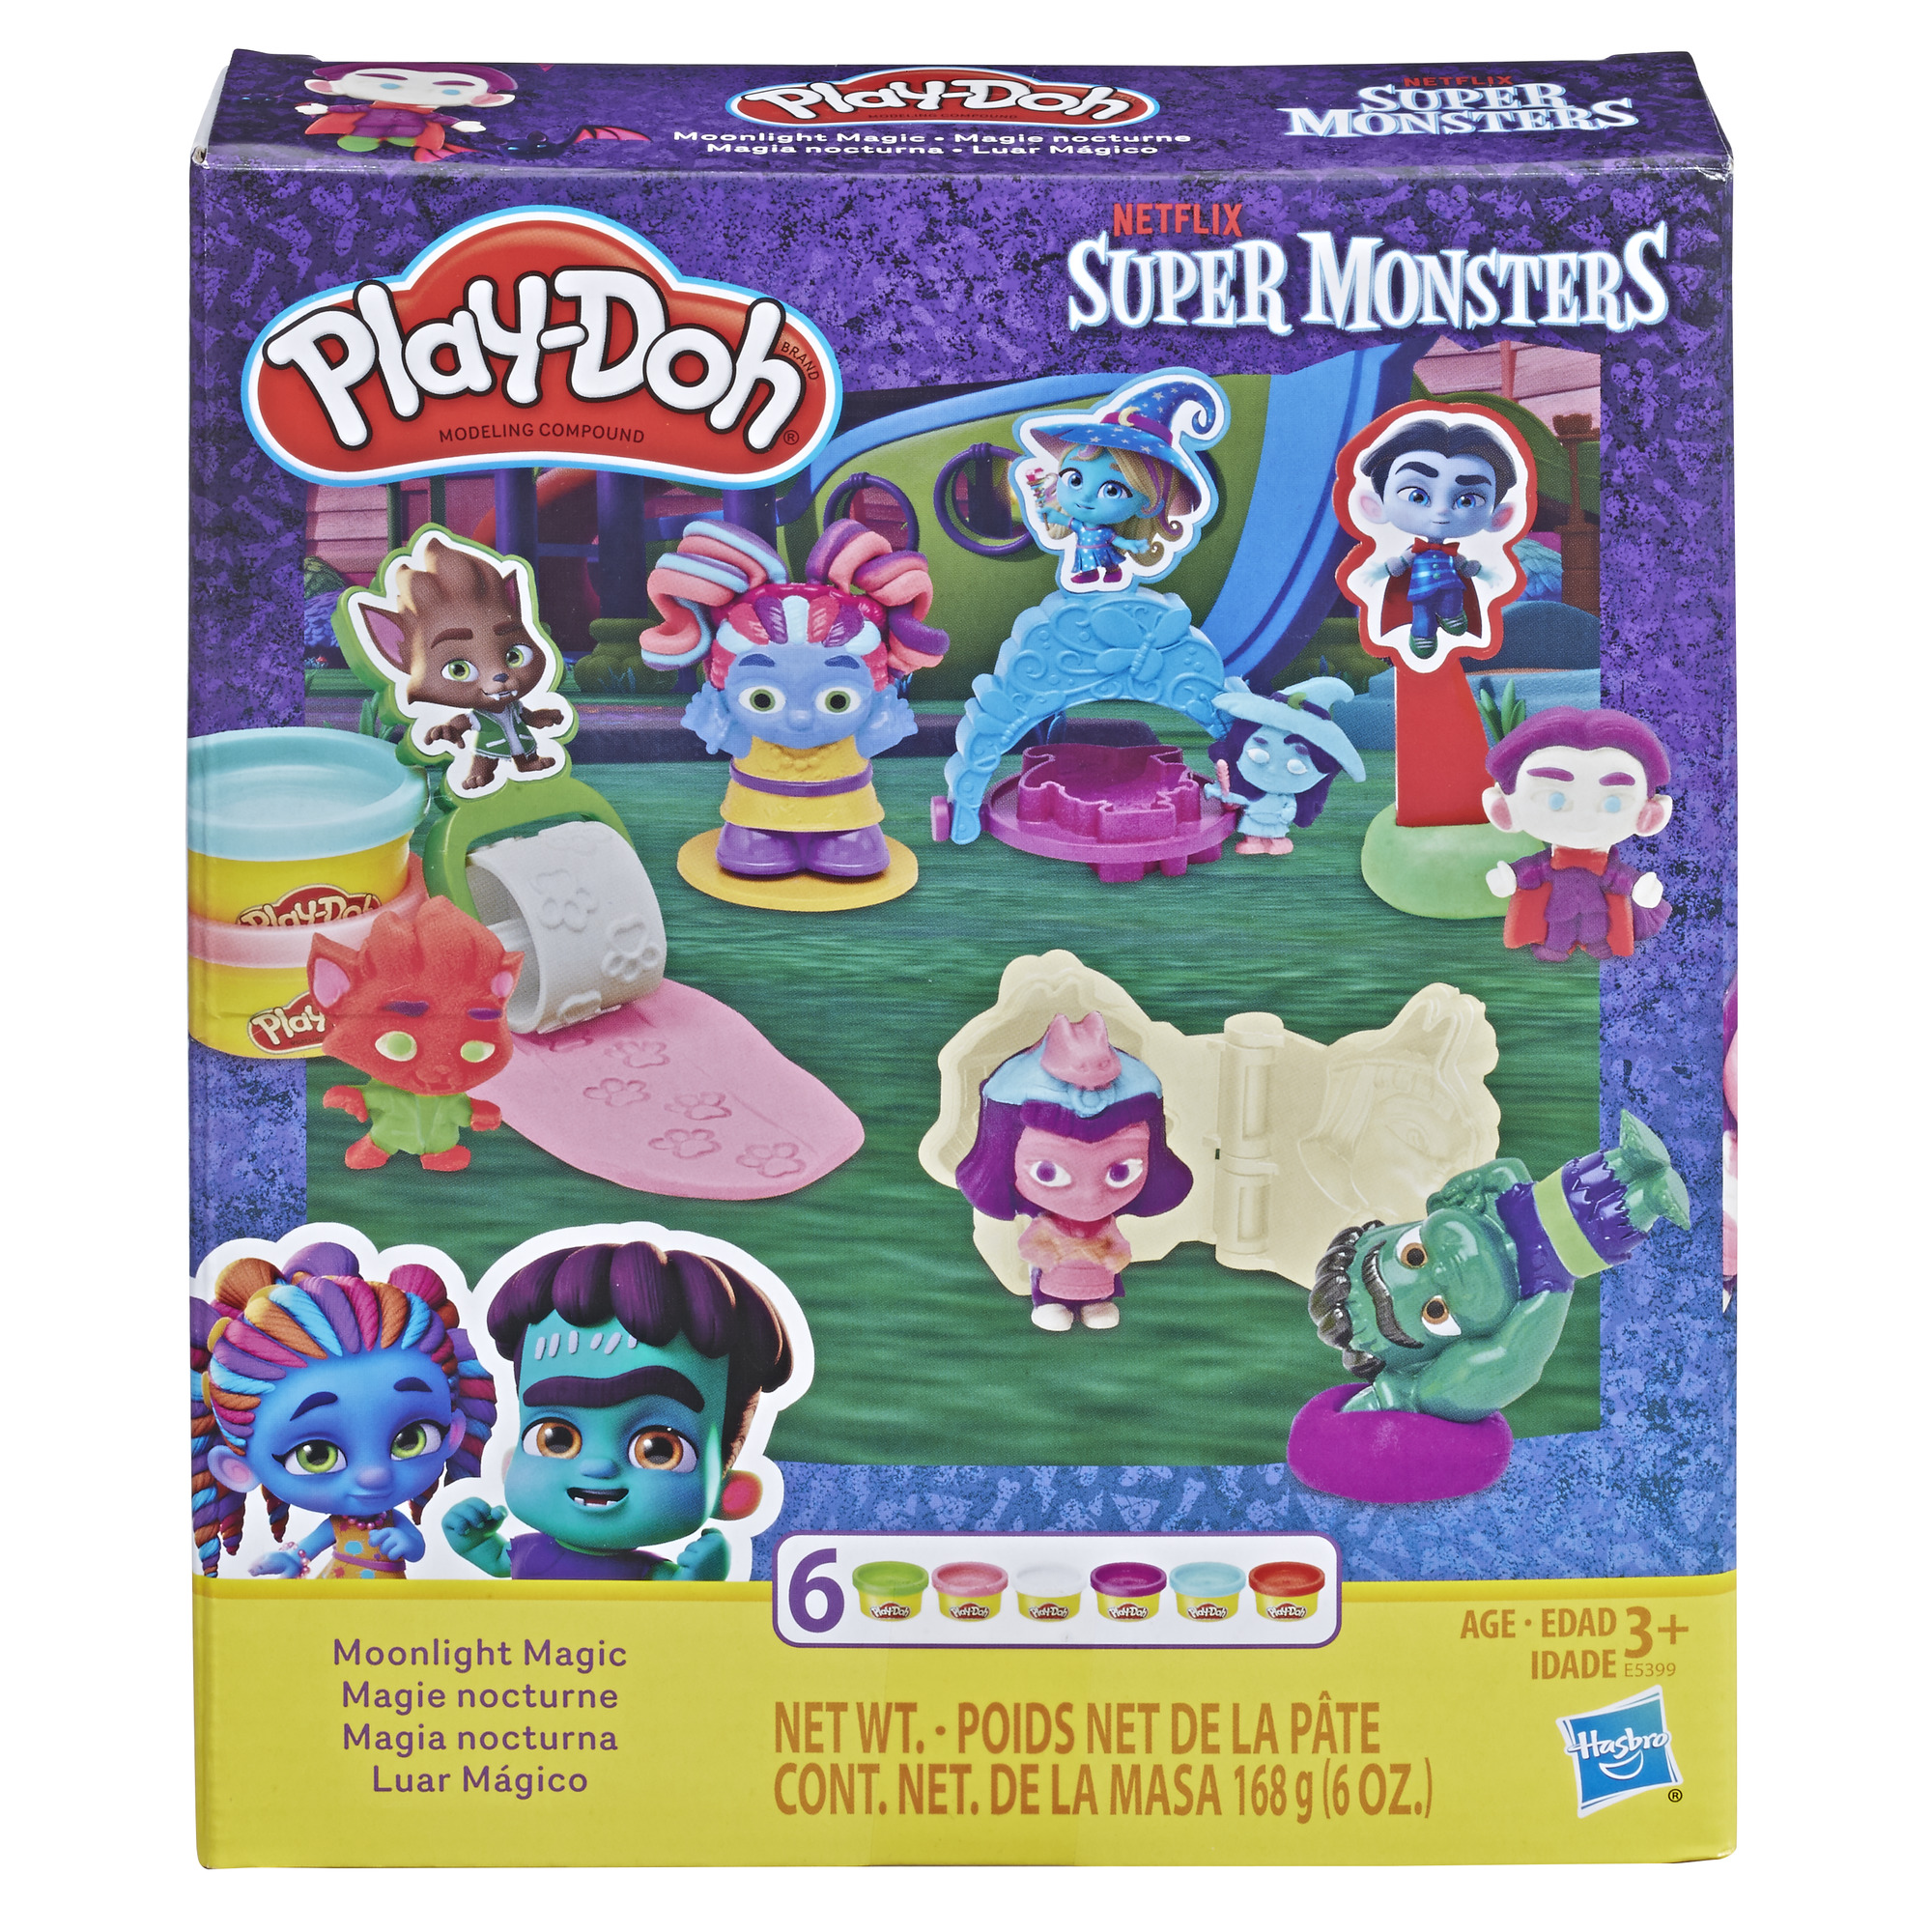 Super Monsters Moonlight Magic Play-Doh Tool Set, 6 cans of Play-Doh